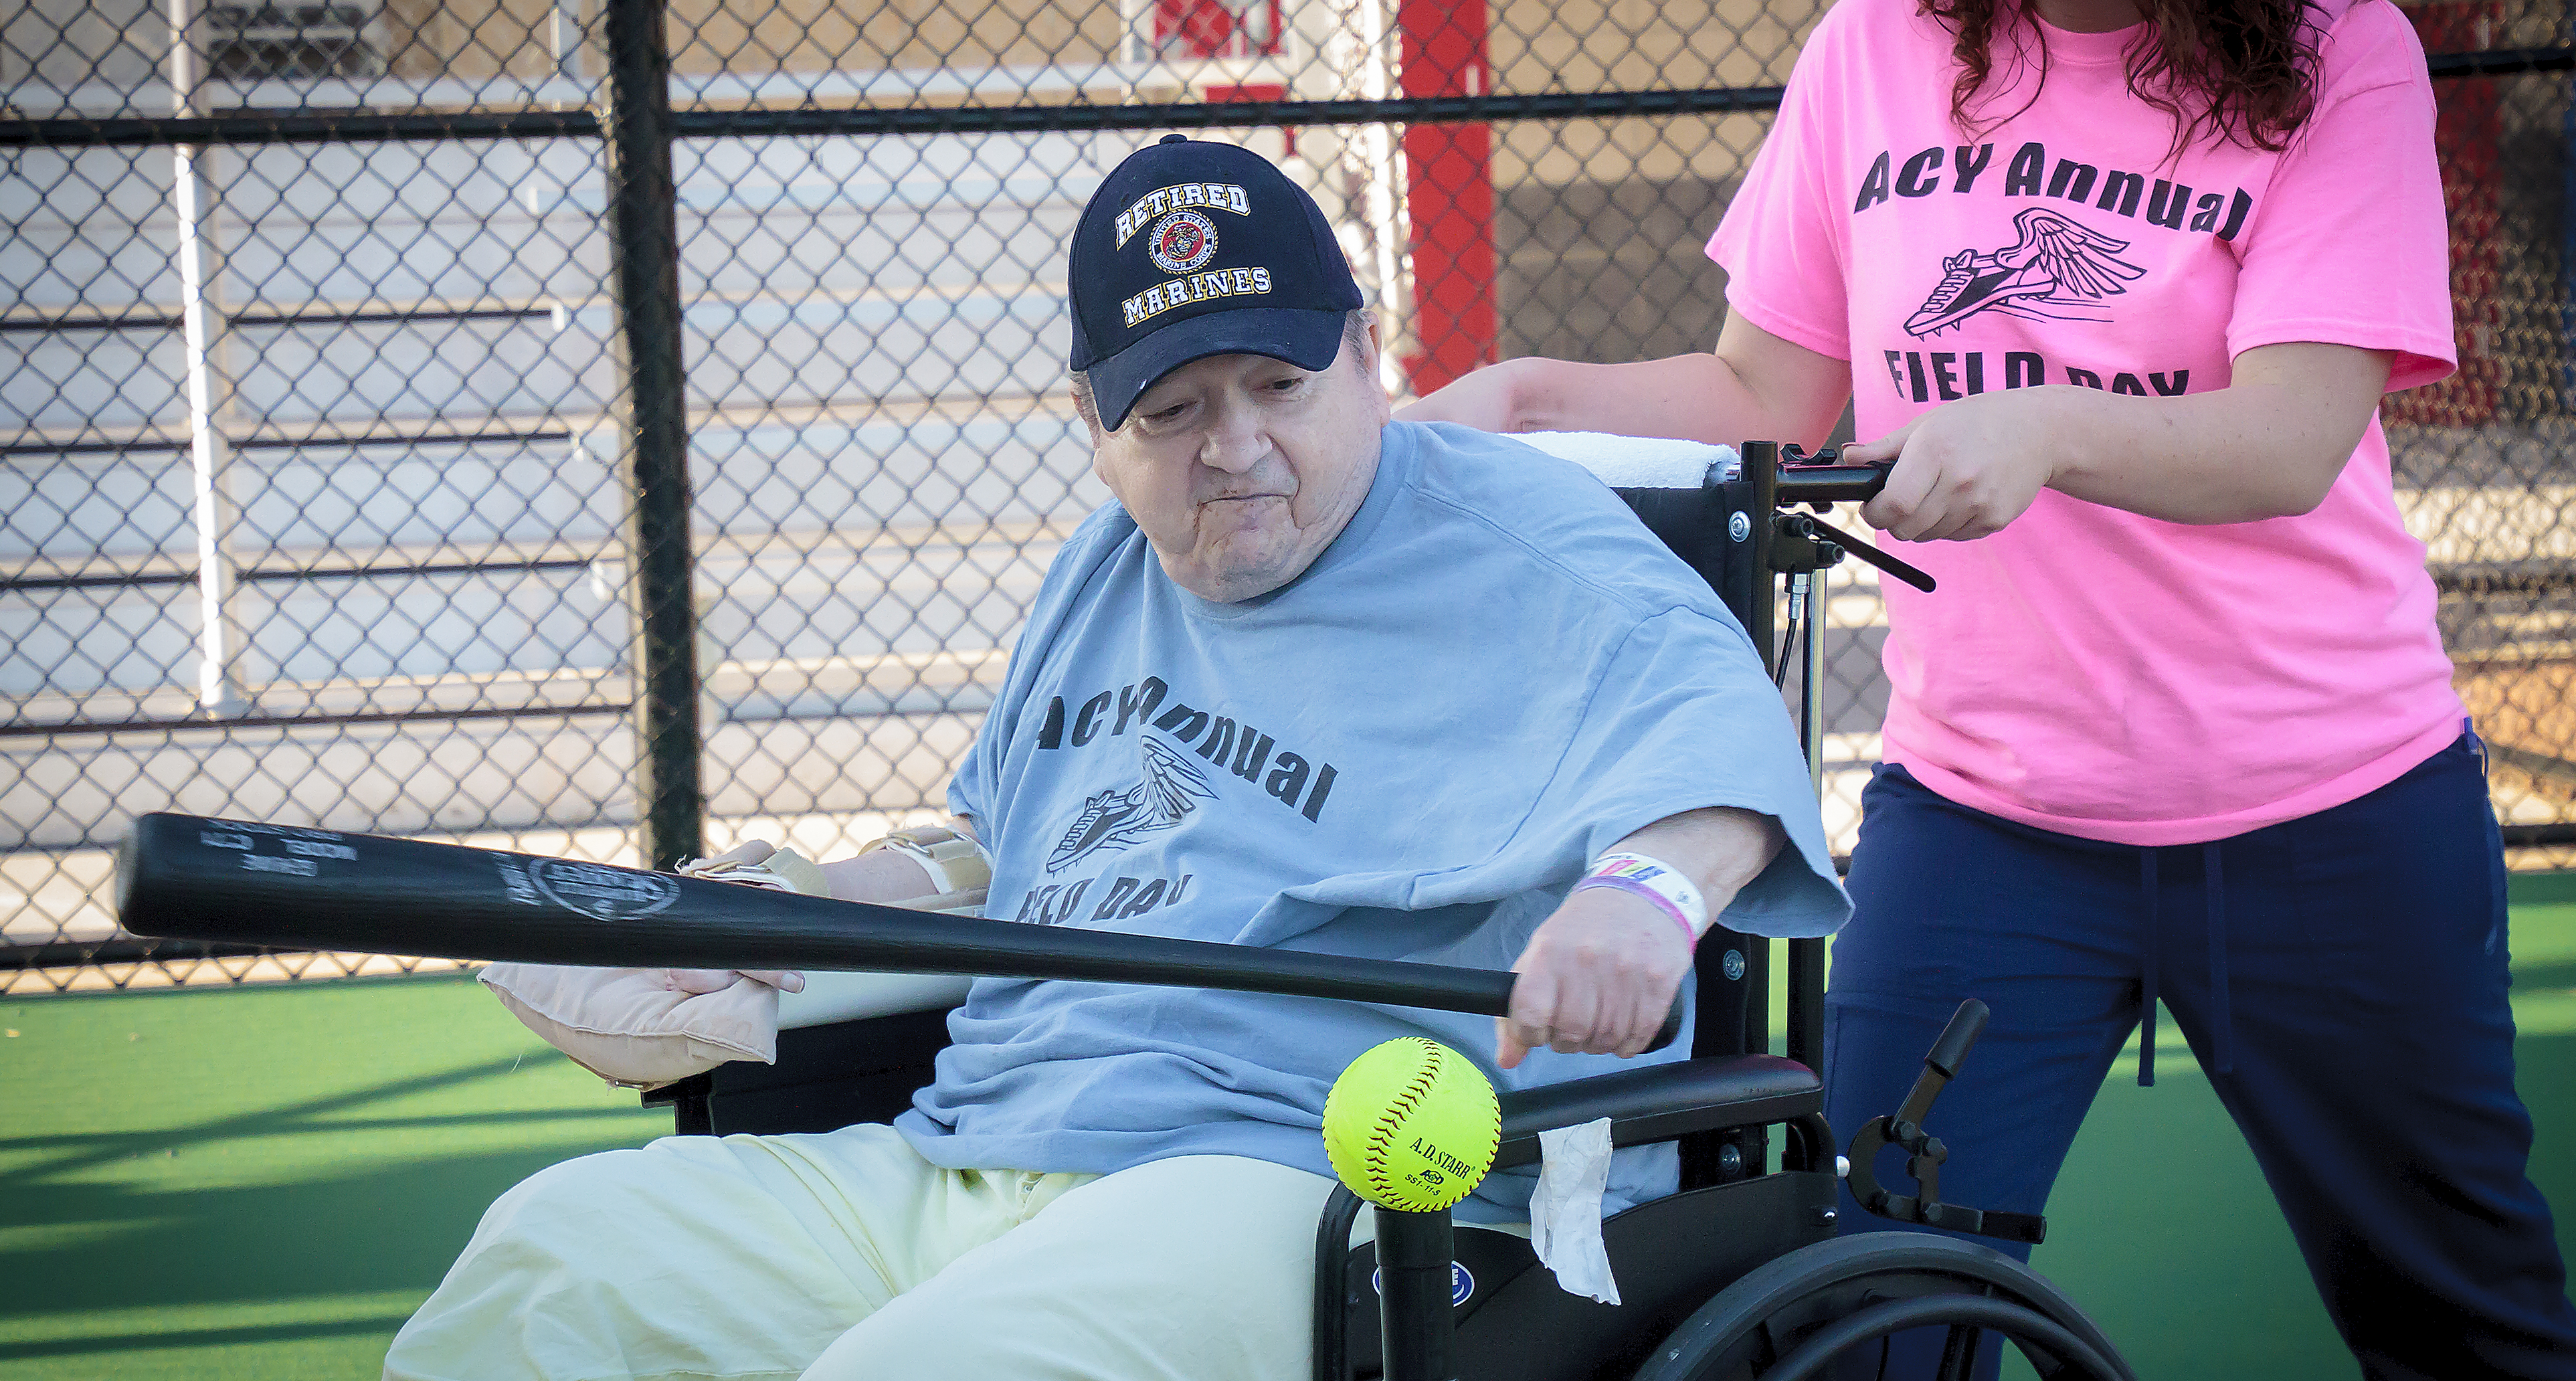 Disabled Veterans in Murfreesboro play ball at the new Miracle Field